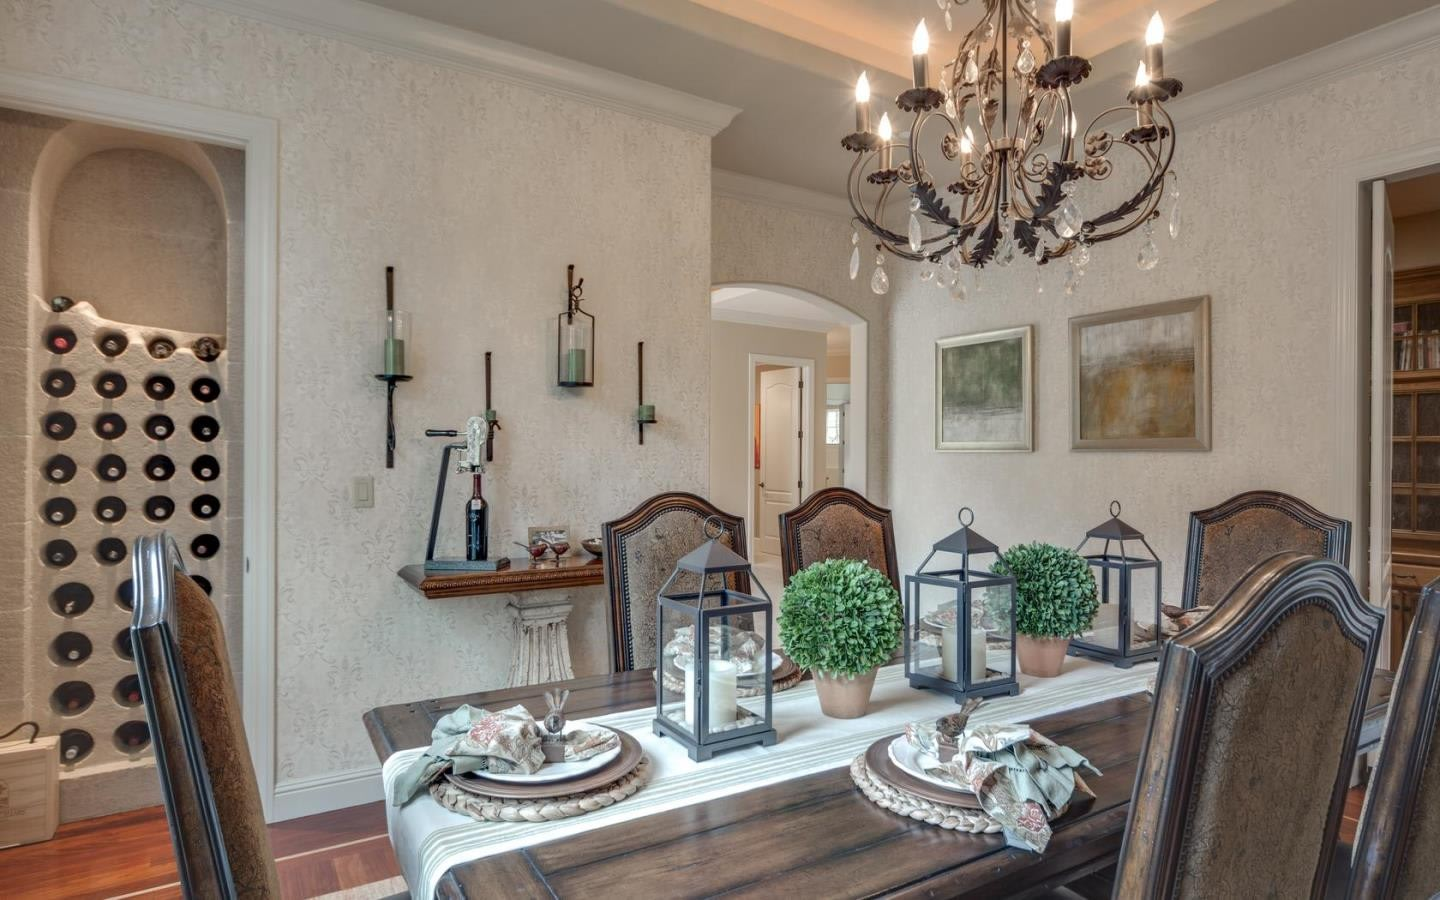 Former san jose sharks defenseman brad stuart selling los for Casual formal dining room